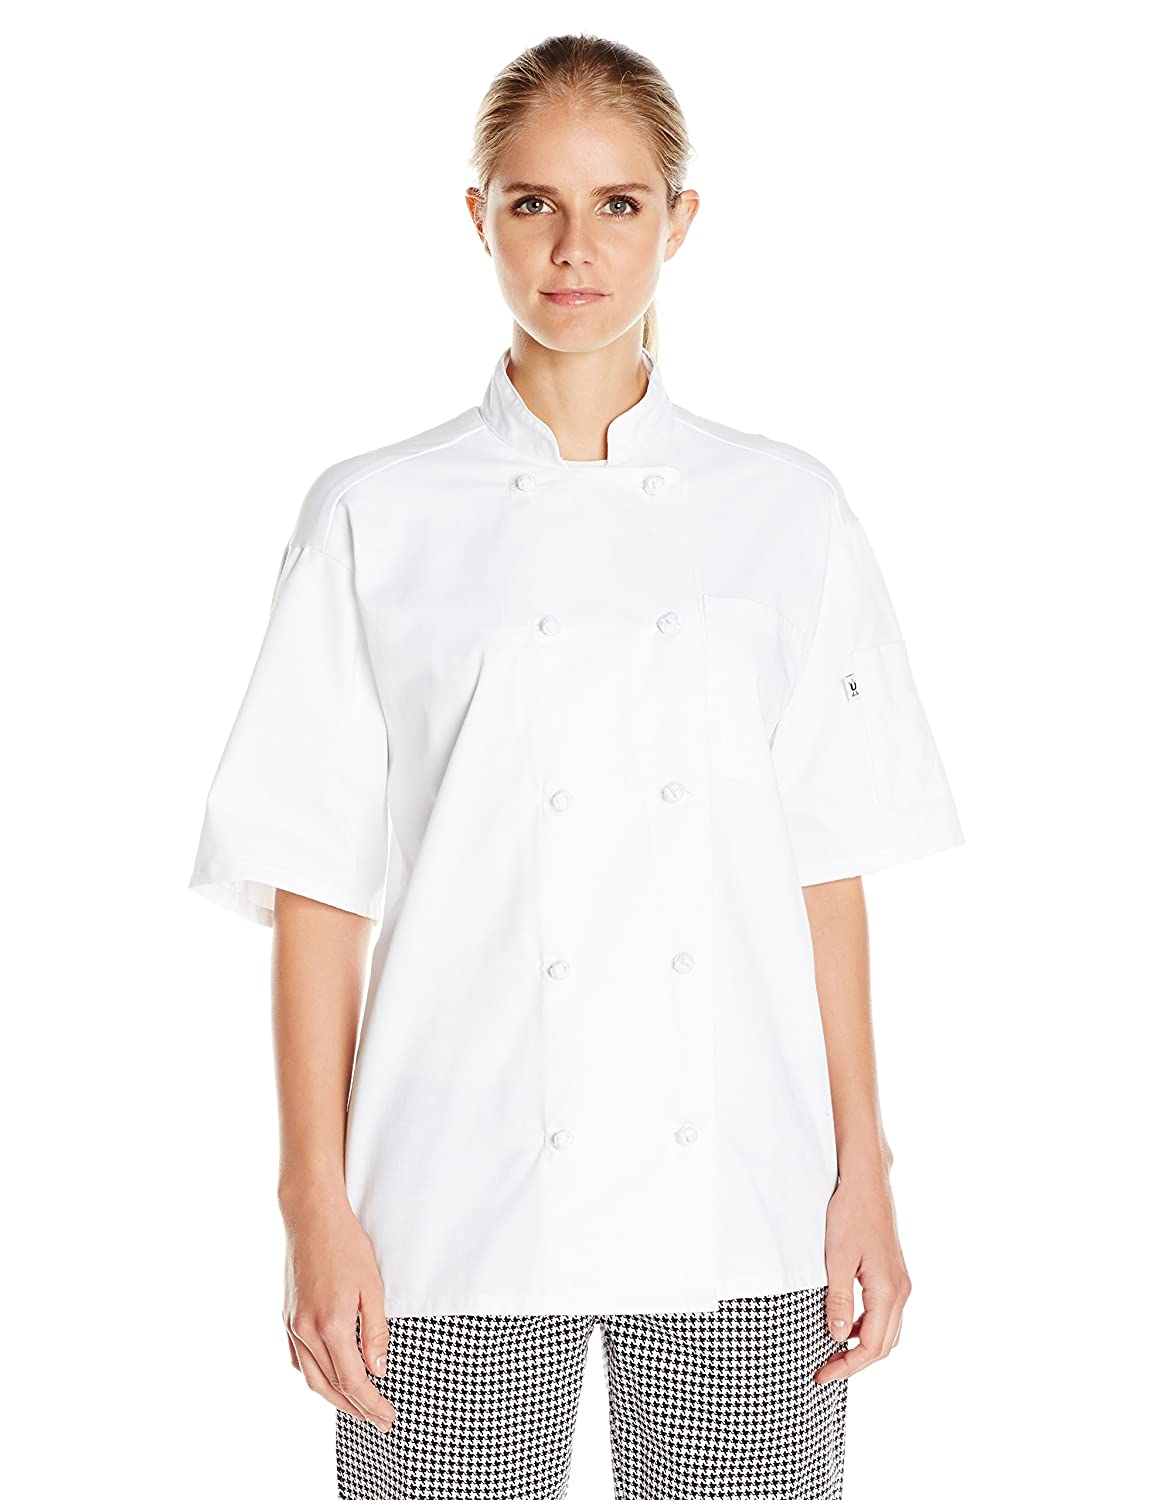 Uncommon Threads Antigua Chef Coat Ss W/mesh 0430